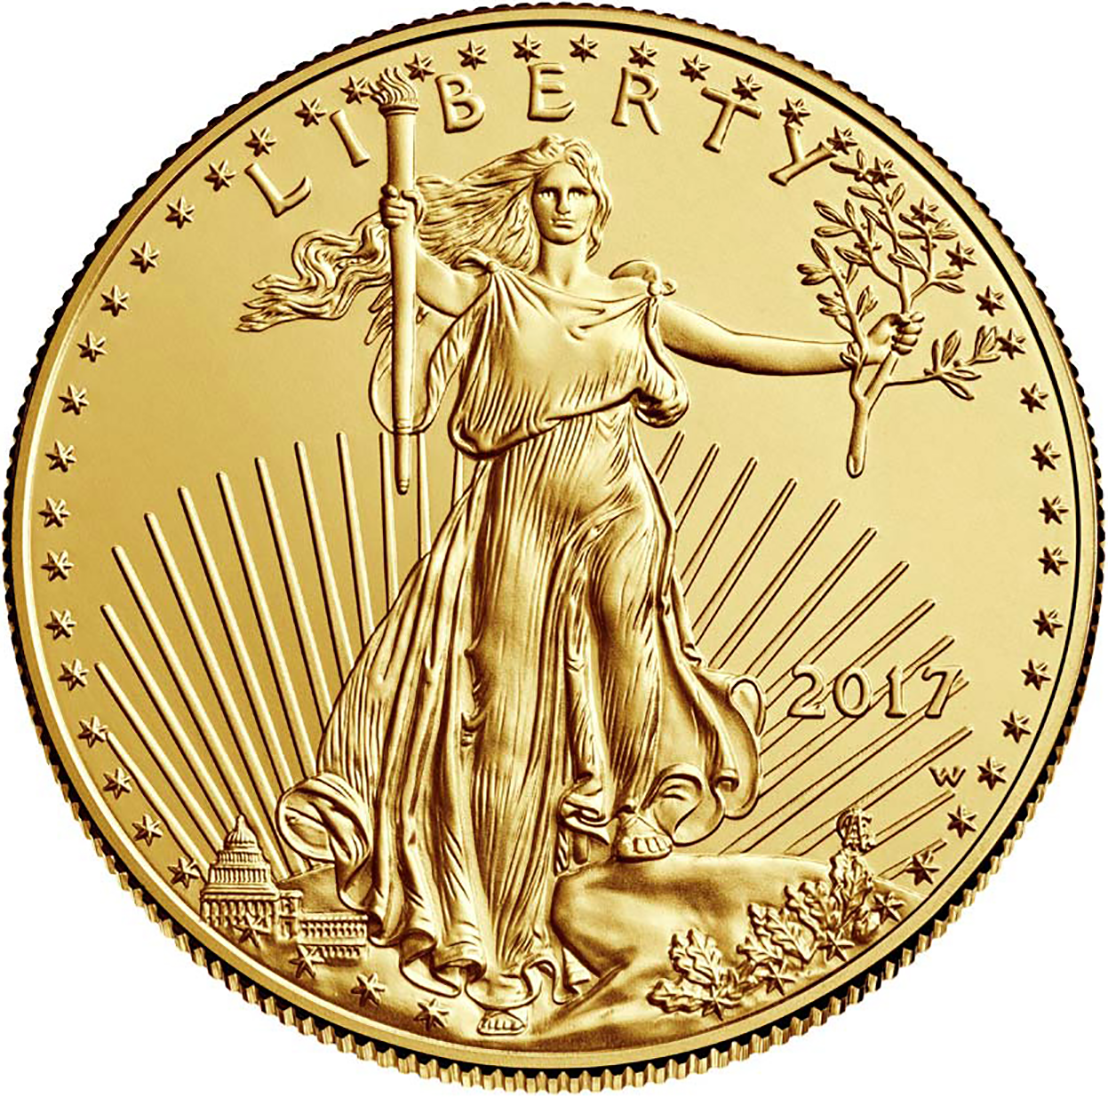 Hover to zoom. (Single photos courtesy of the U.S. Mint)